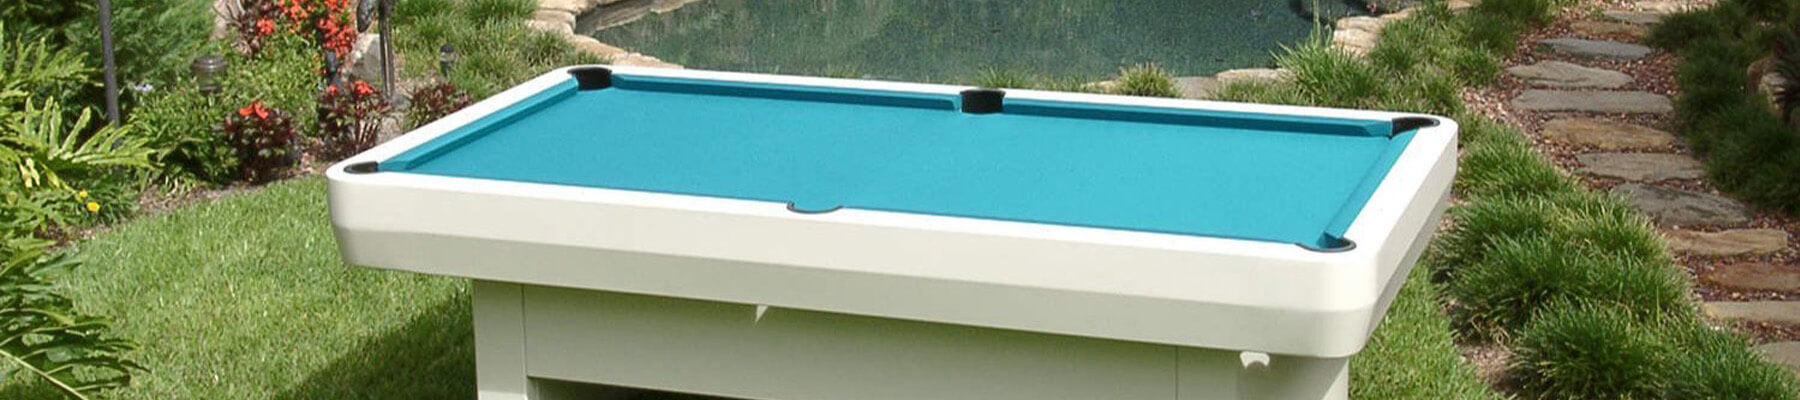 Why You Need to Add an Outdoor Pool Table to Your Backyard - Gaming Blaze